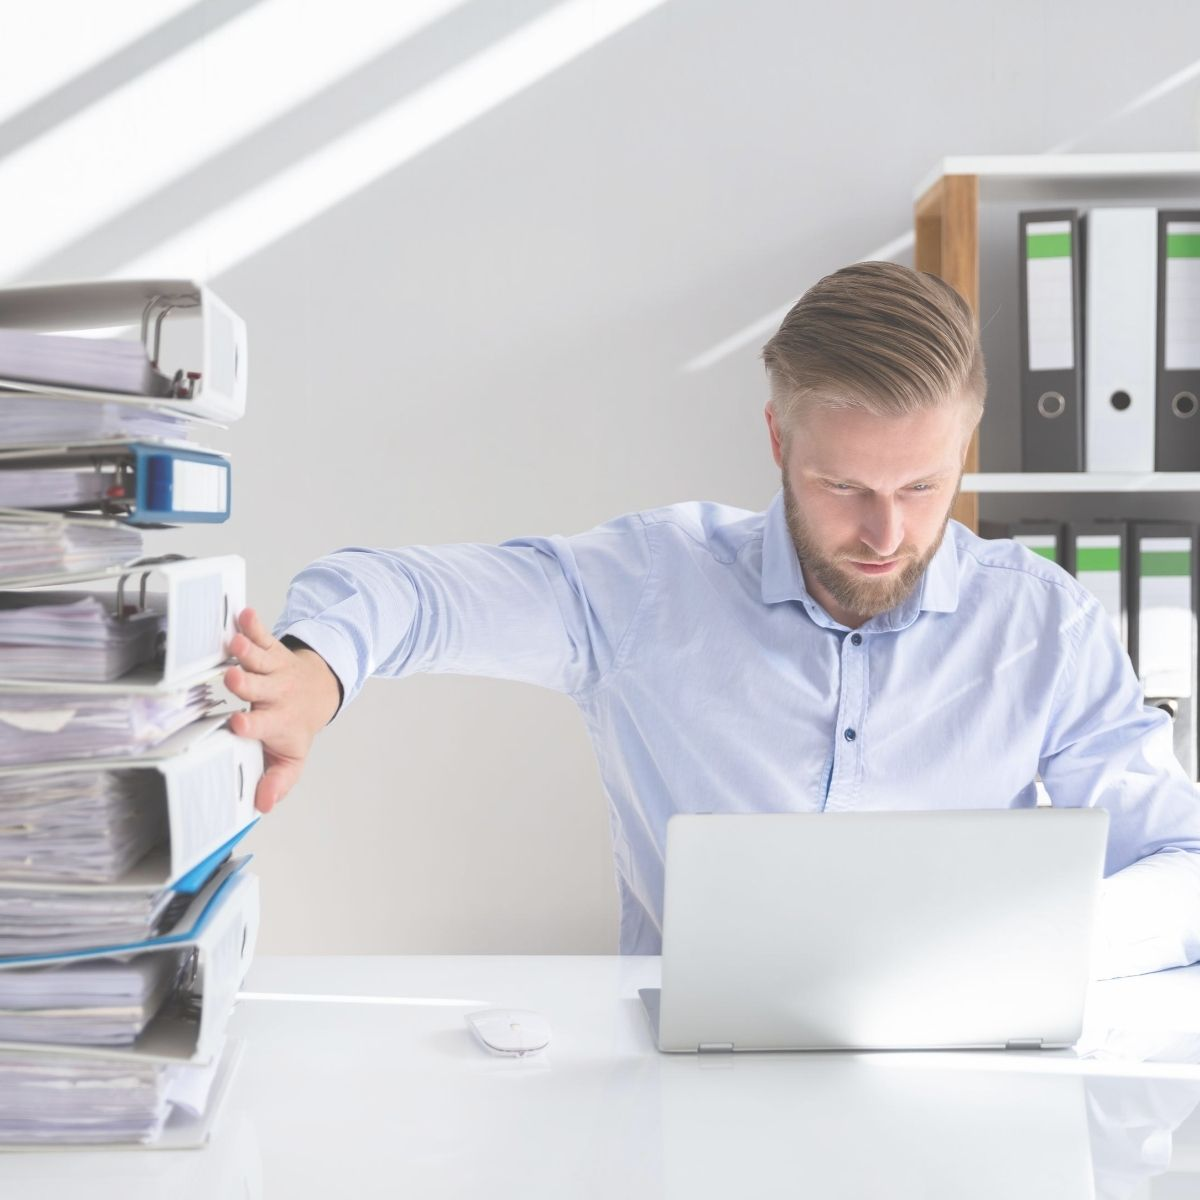 Man with a laptop and files stacked next to him